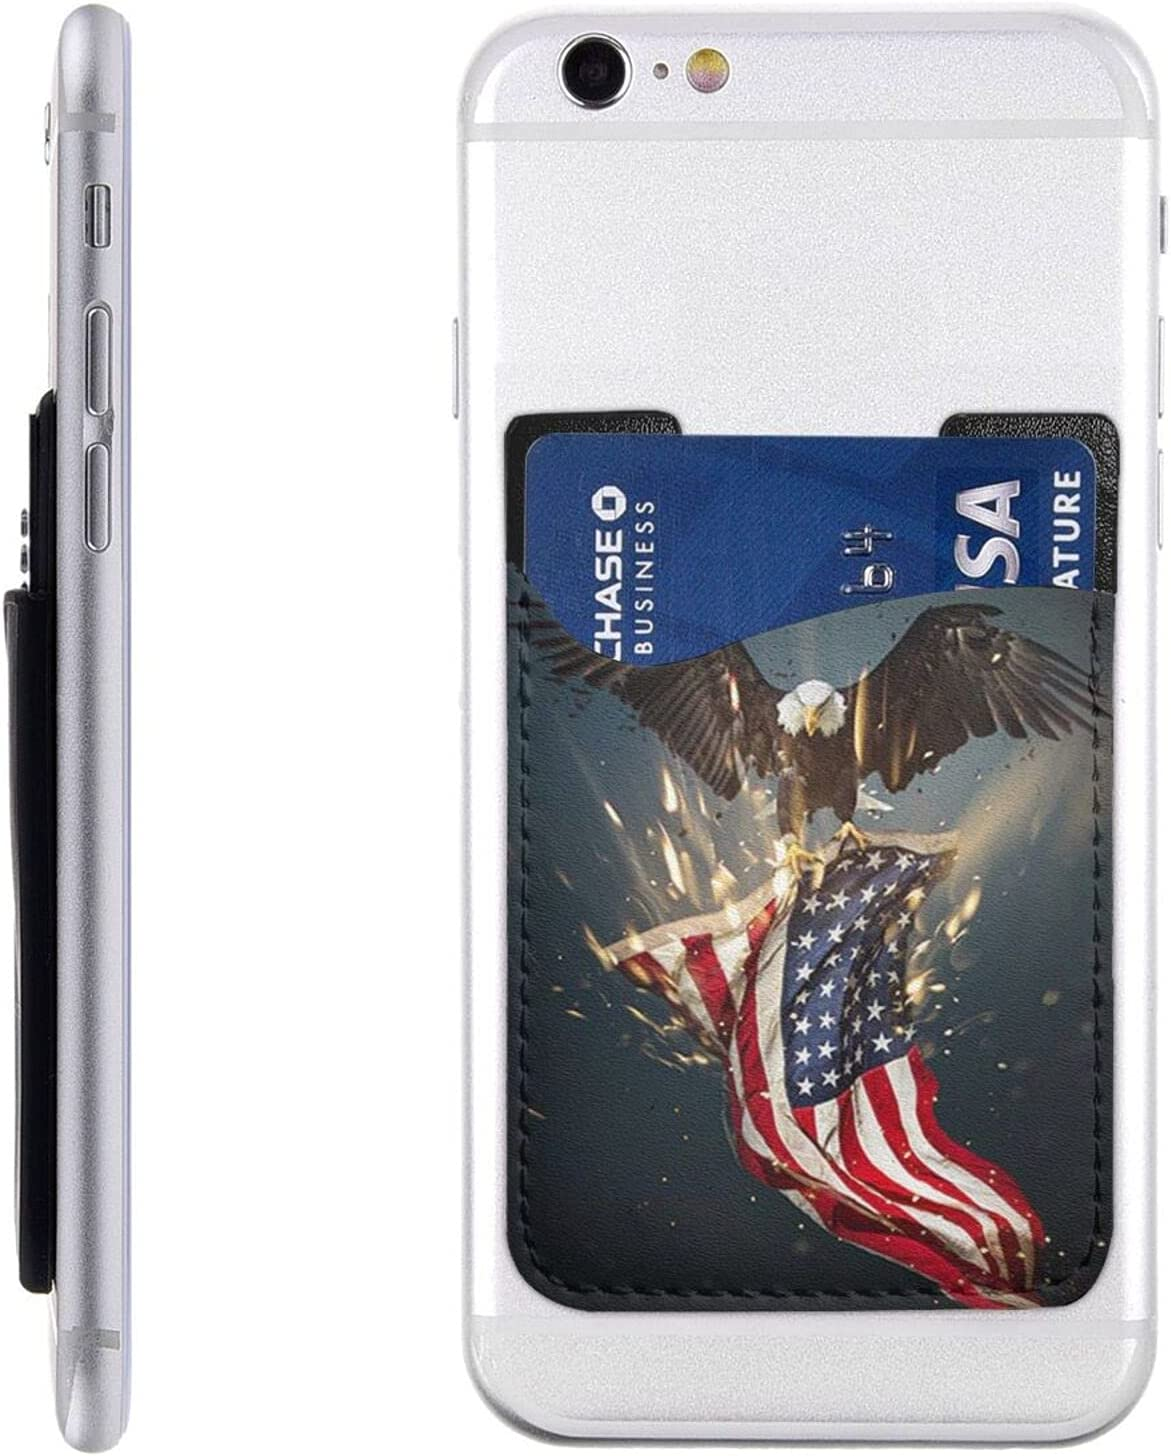 North American Bald Eagle Phone Card On Stick Holder Cell New York Mall Store